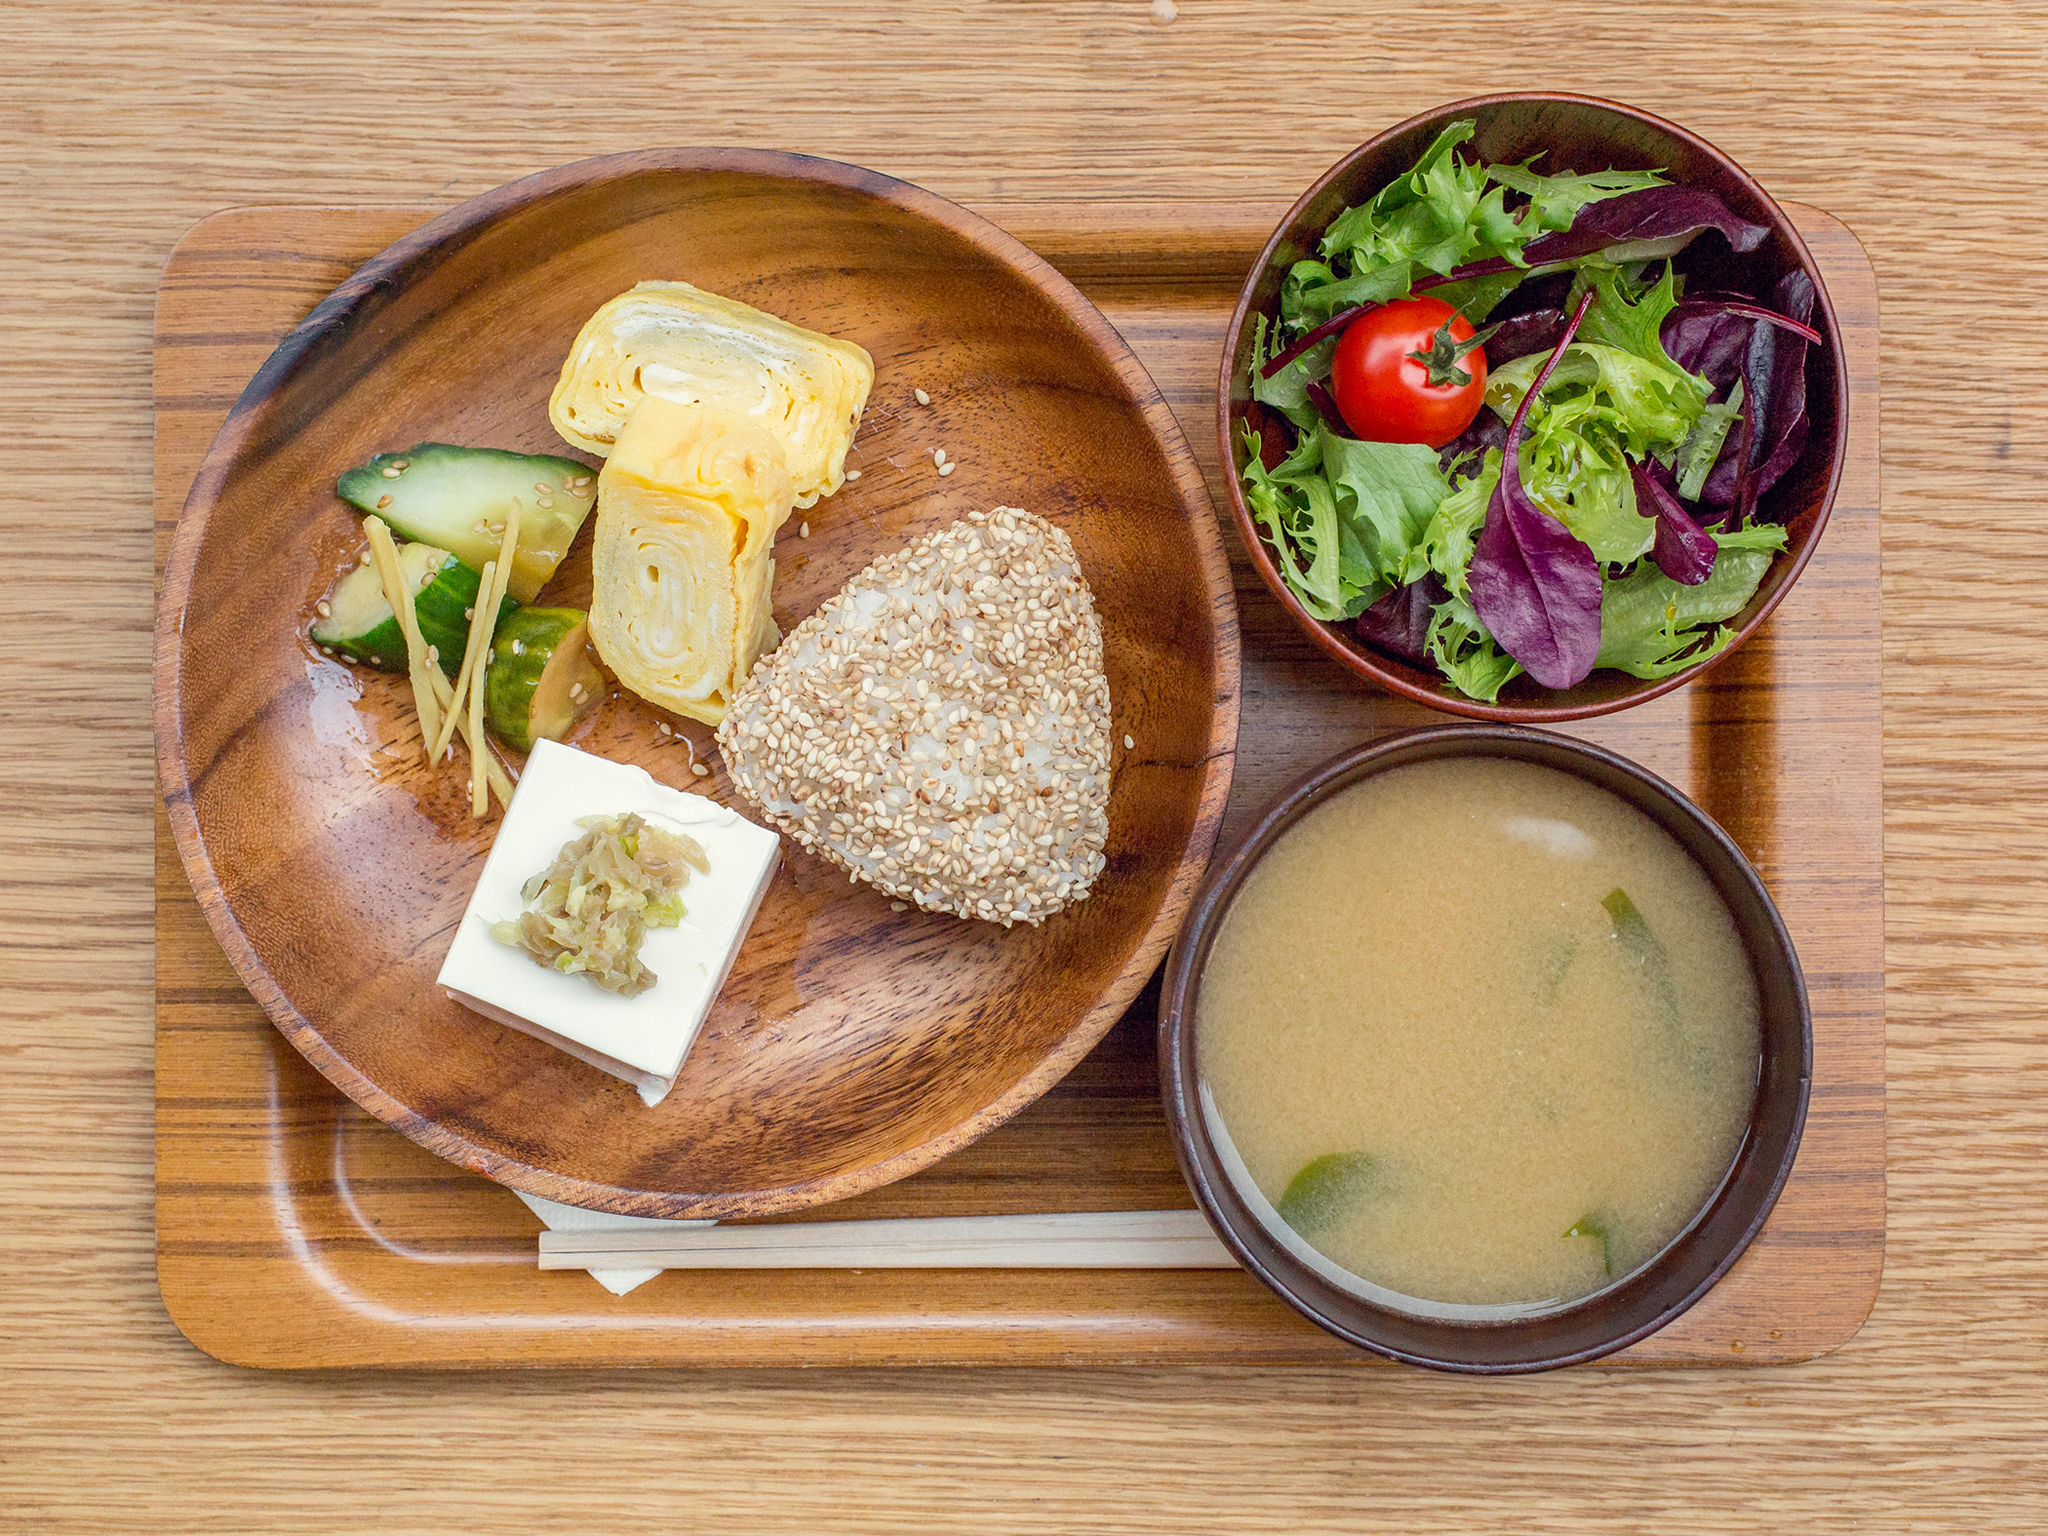 Tamagoyaki at The Monocle Café, £8.50 as part of the Japanese breakfast